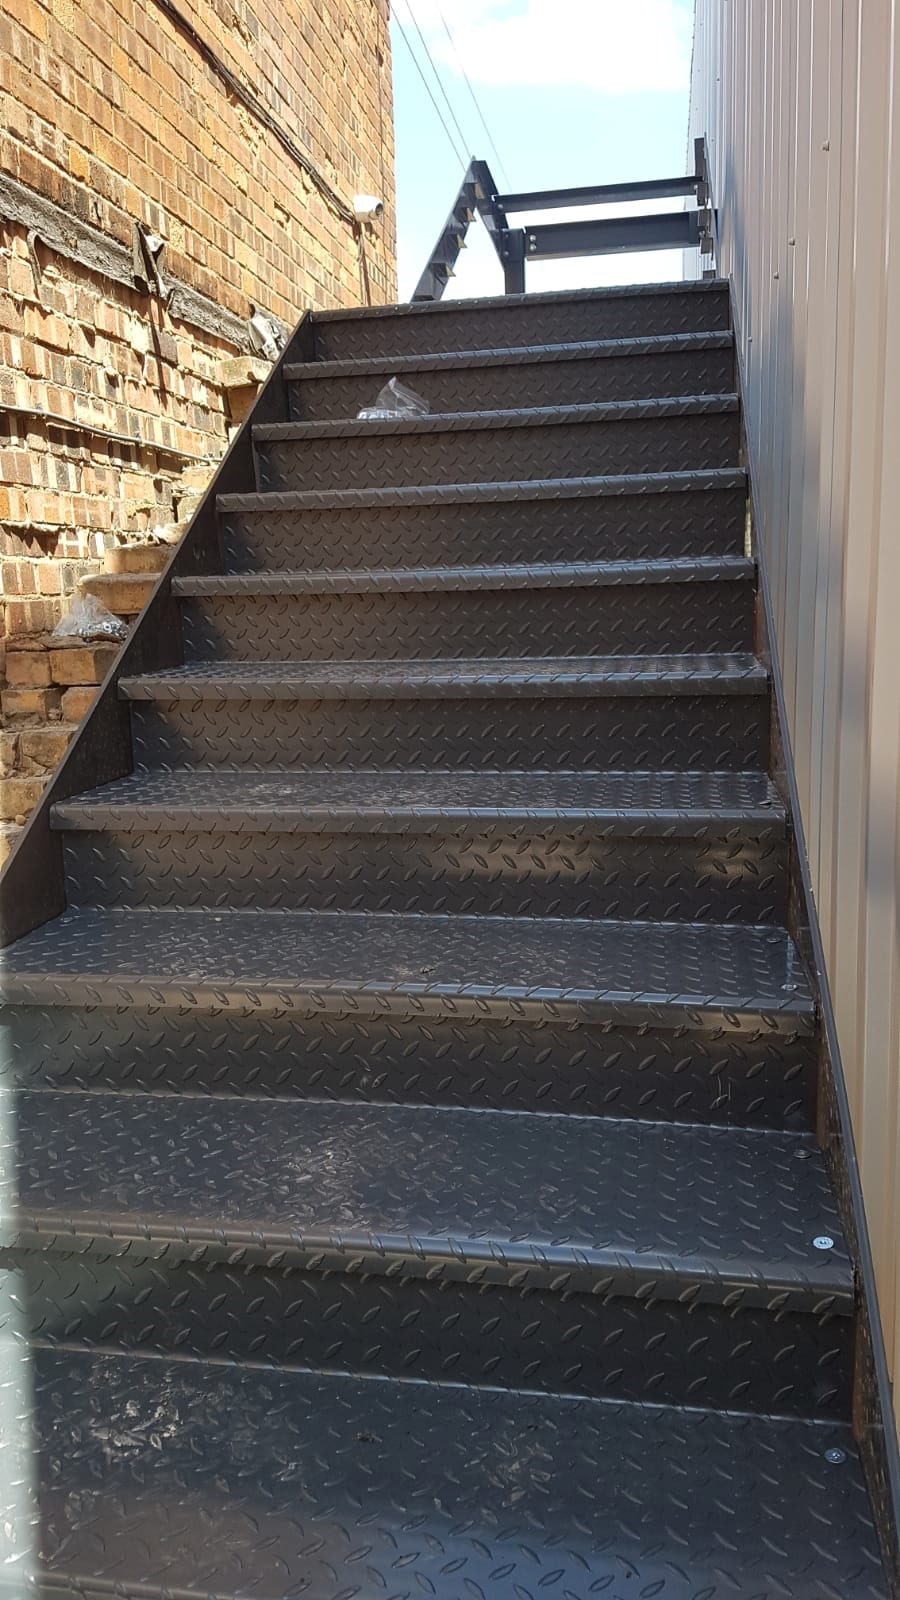 Emergency escape stairs with cladding min